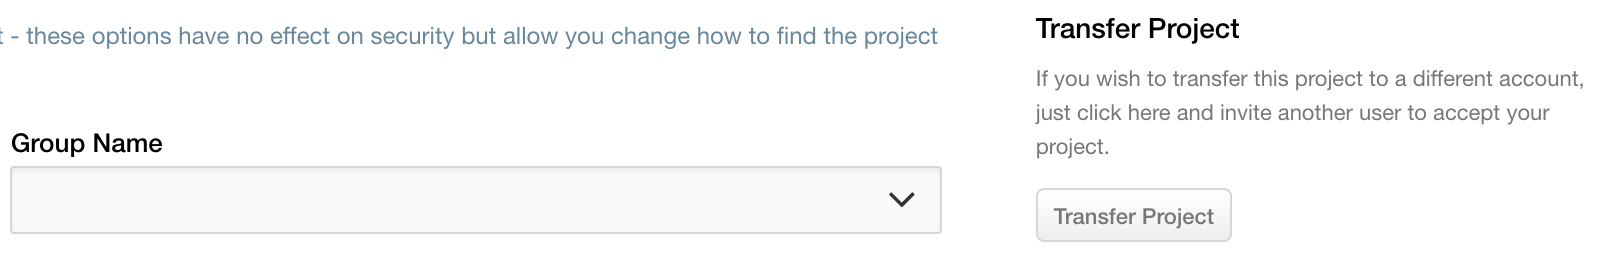 How do I transfer a project? - Projects — Codebase